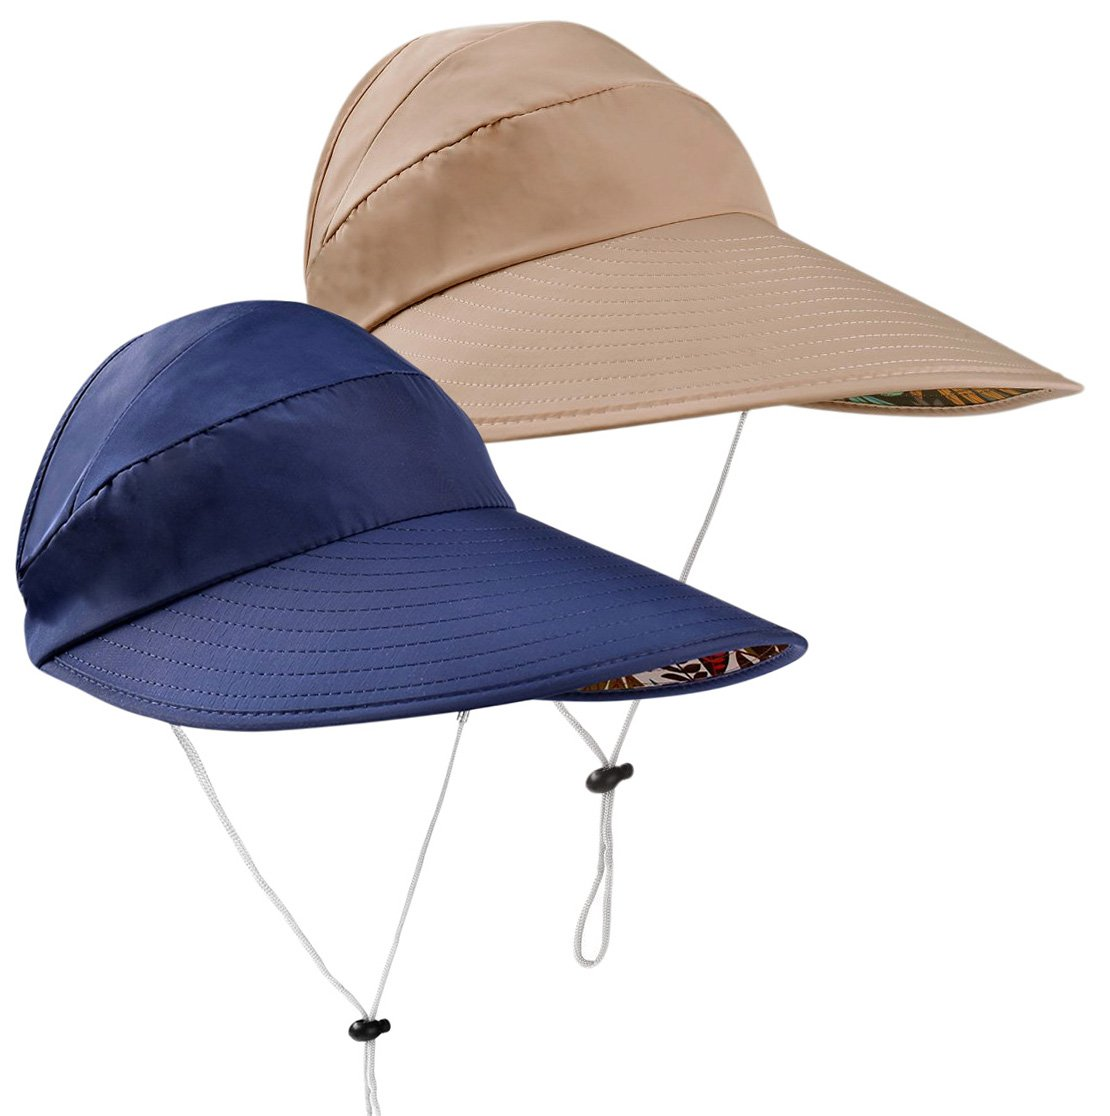 HindaWi Sun Hats for Women Wide Brim UV Protection Visor Floppy Hat Beach Summer Packable Caps by HindaWi (Image #1)